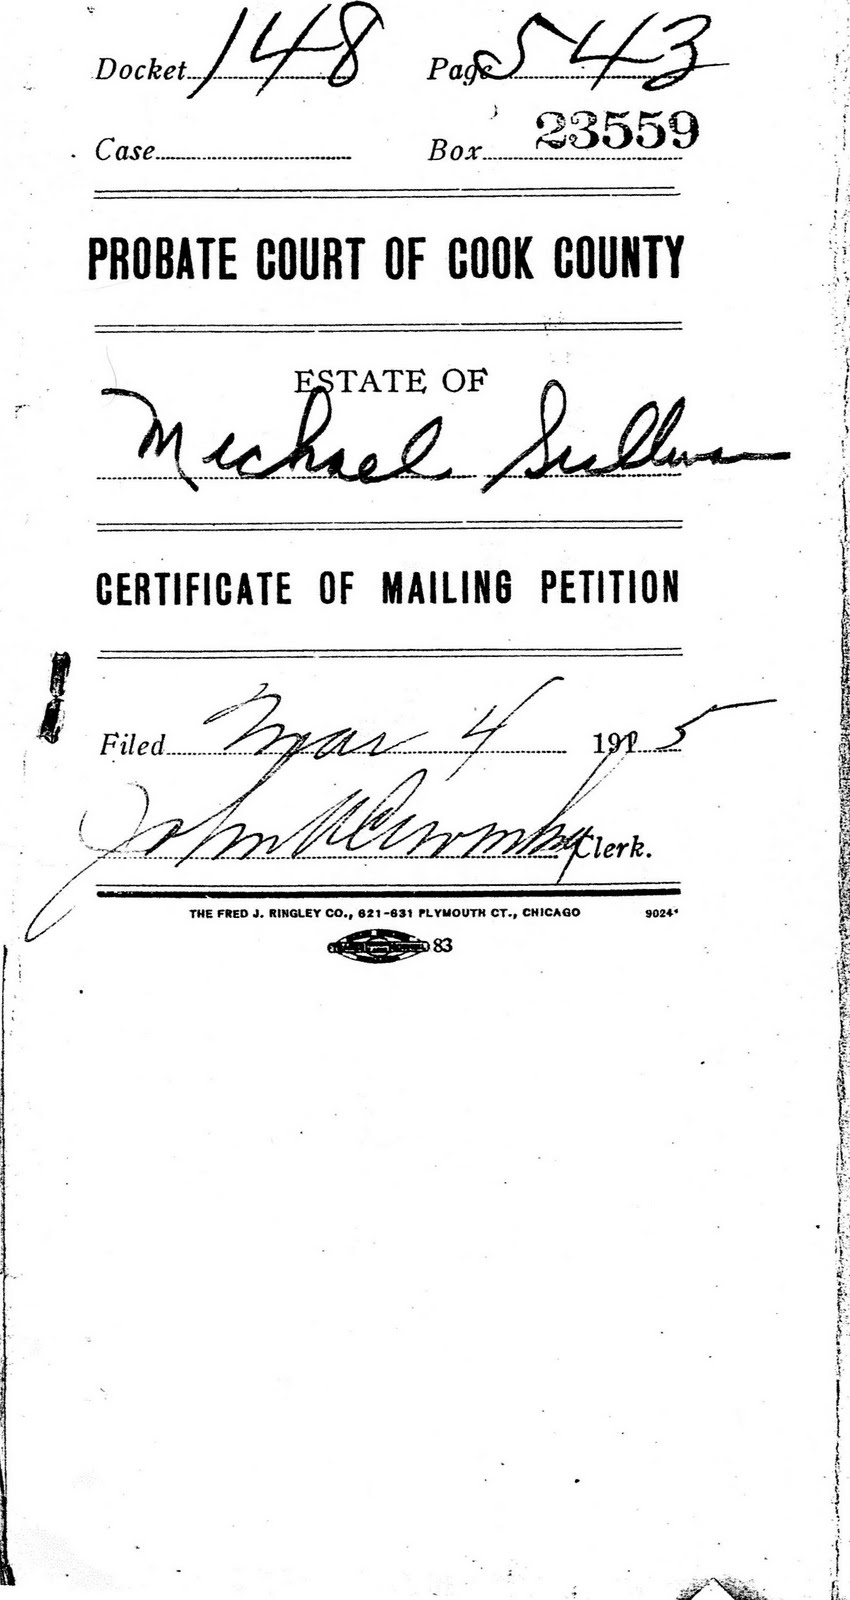 Sullivancorcoran genealogy michael sullivan certificate of the following certificate of mailing petition is one of the documents from the probate file it identifies all known immediate relatives and their addresses 1betcityfo Image collections